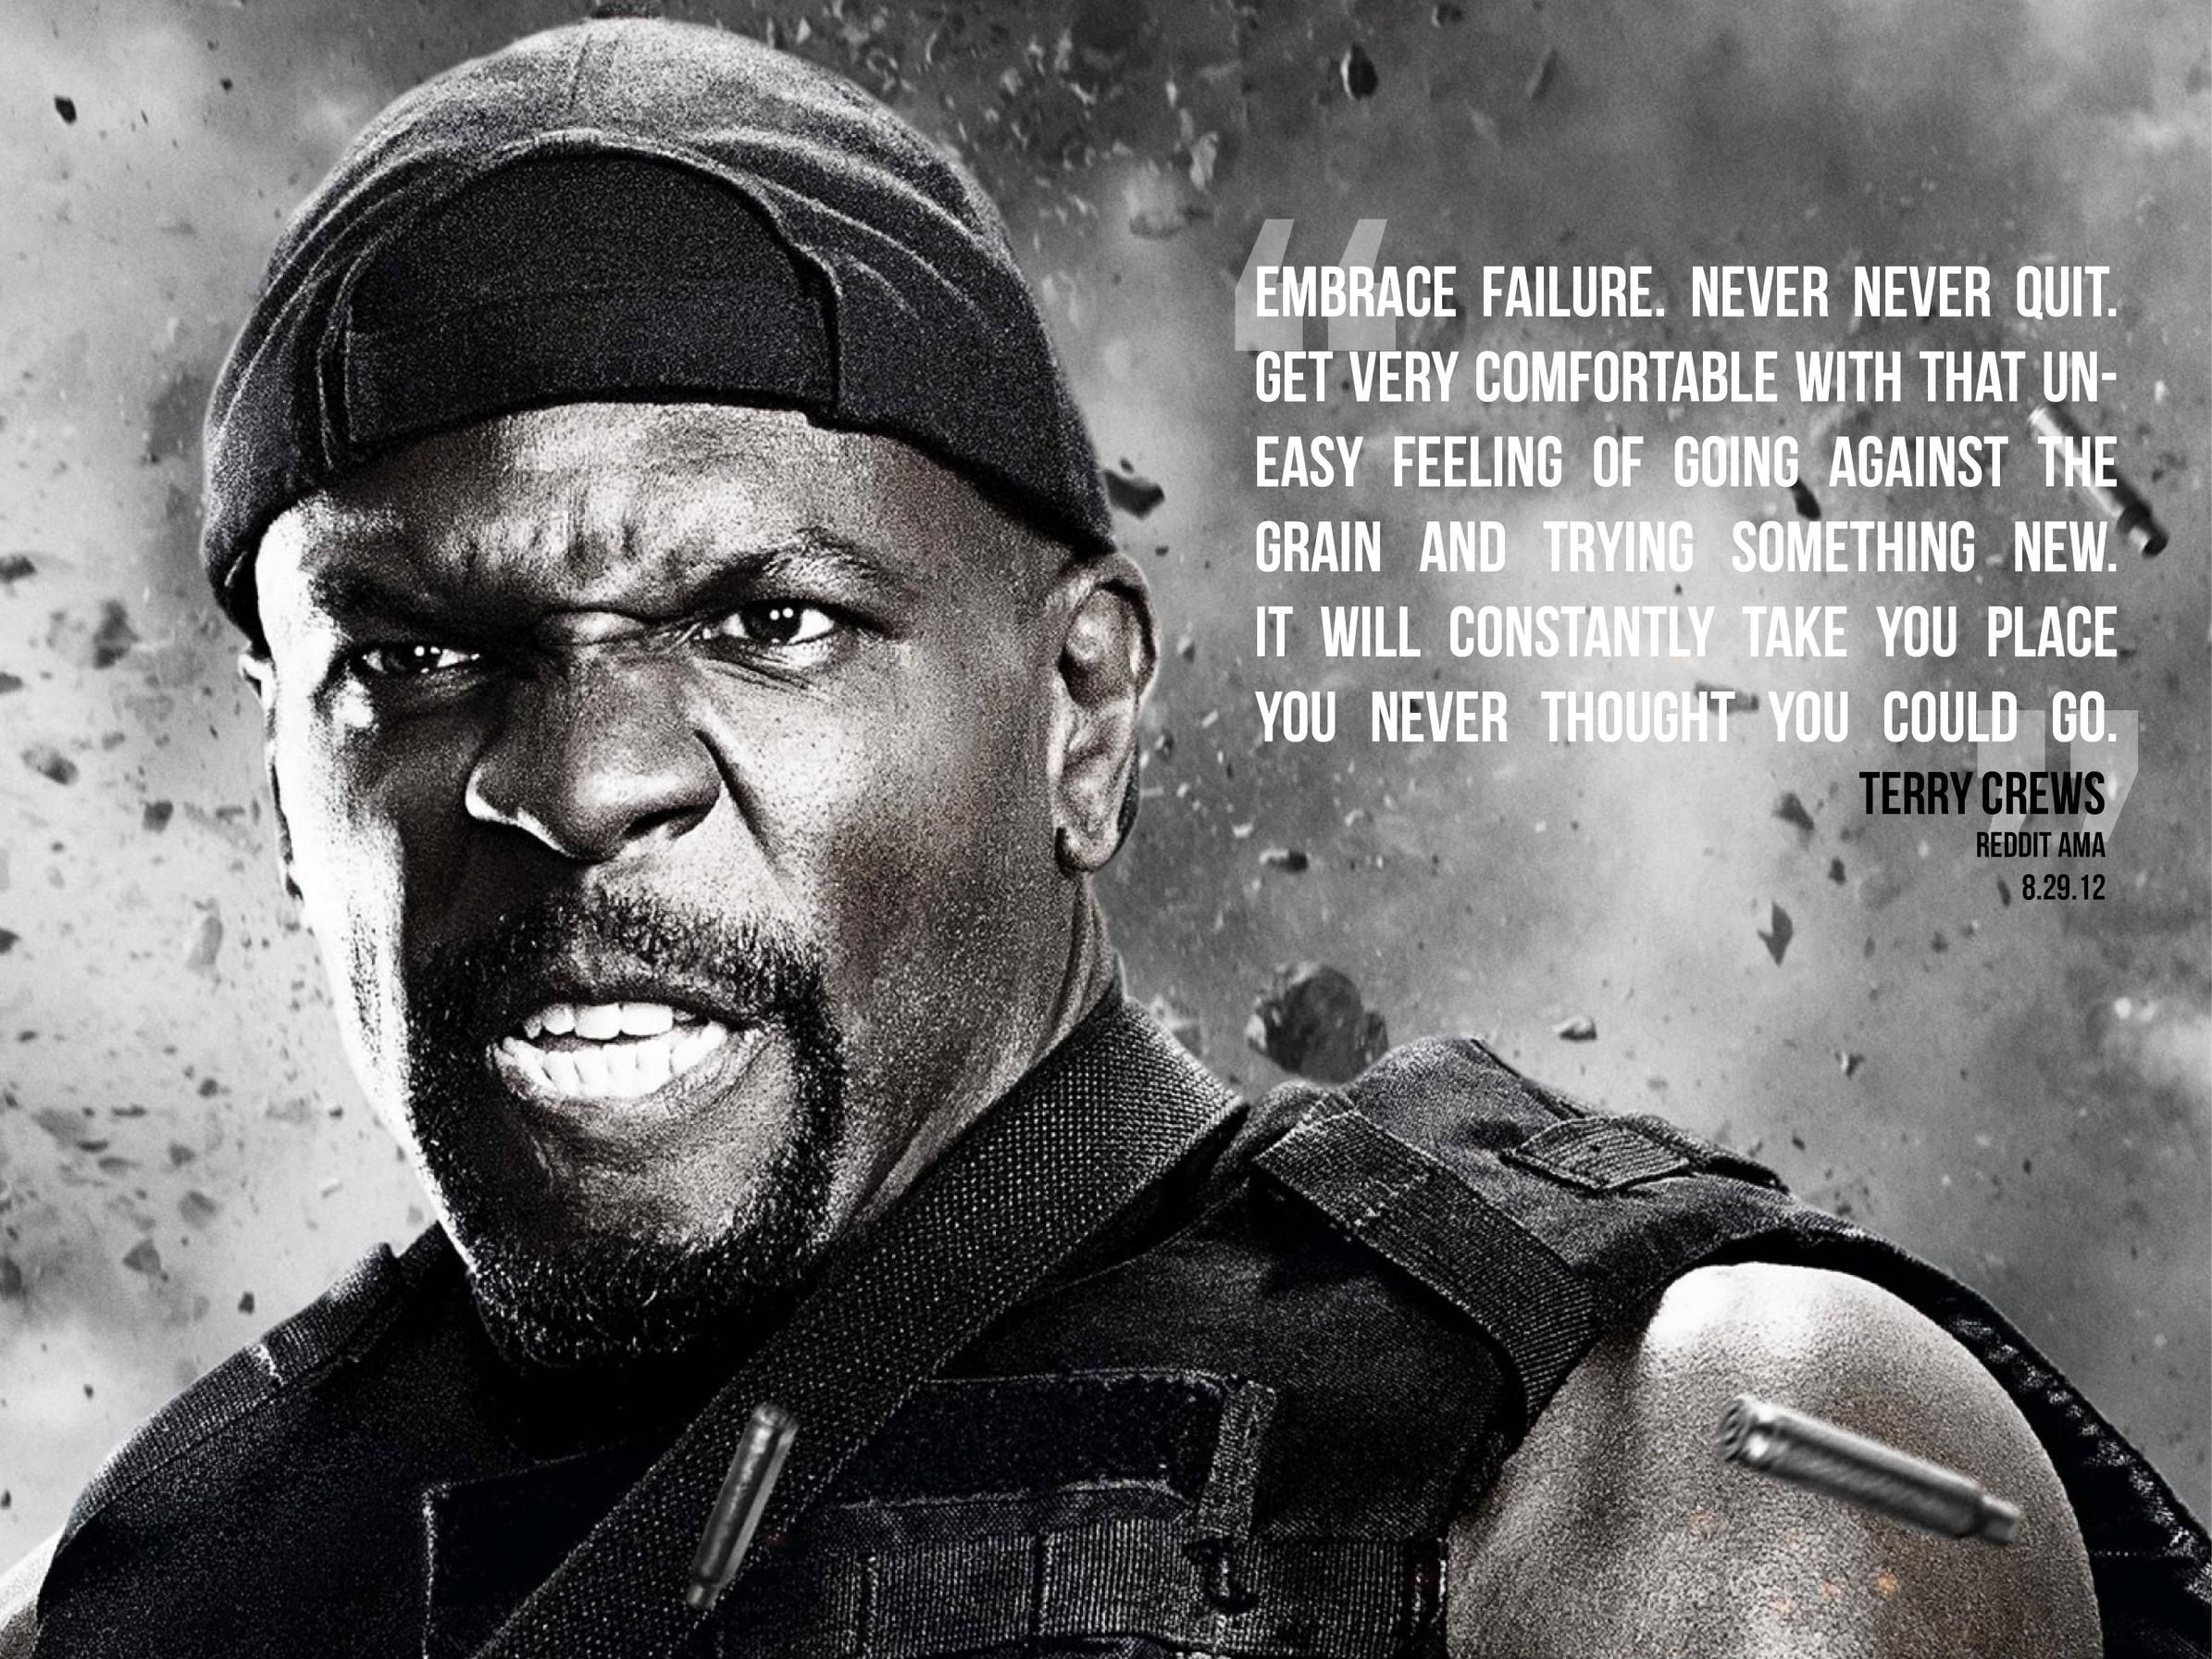 Embrace failure. Never never quit. Get very comfortable with that uneasy feeling of going against the grain and trying something new.  Terry Crews